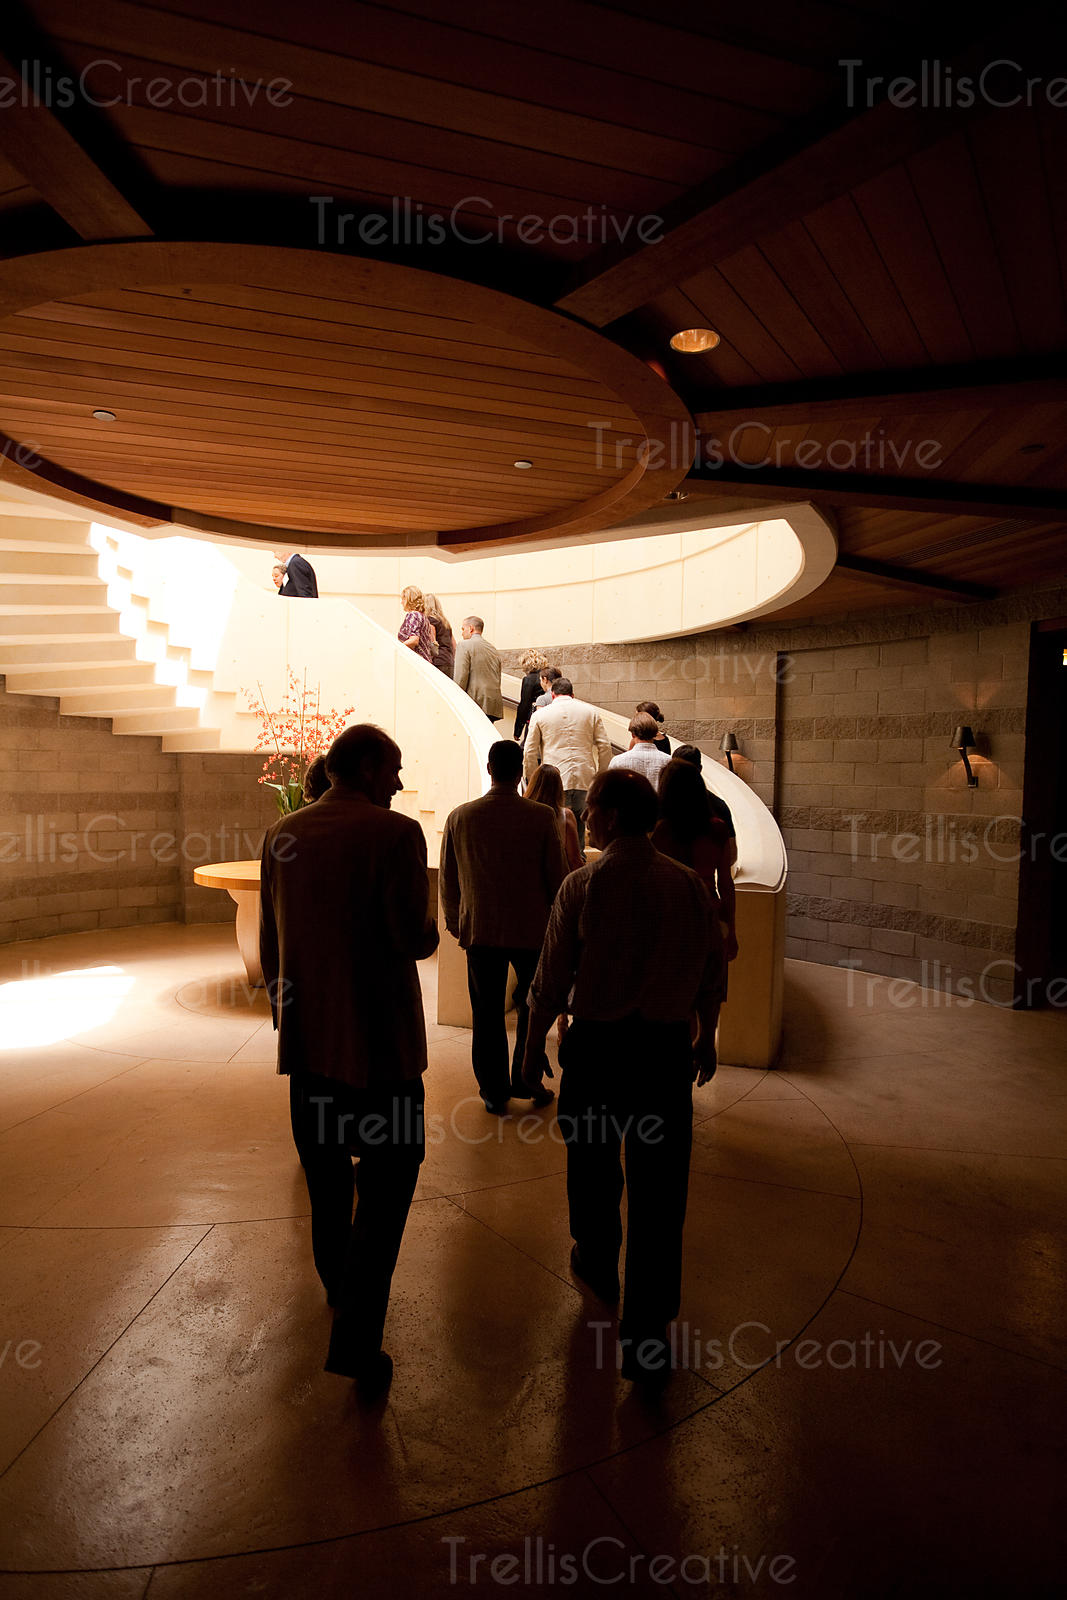 Tourists ascend the spirial staircase at Opus One winery in Napa Valley